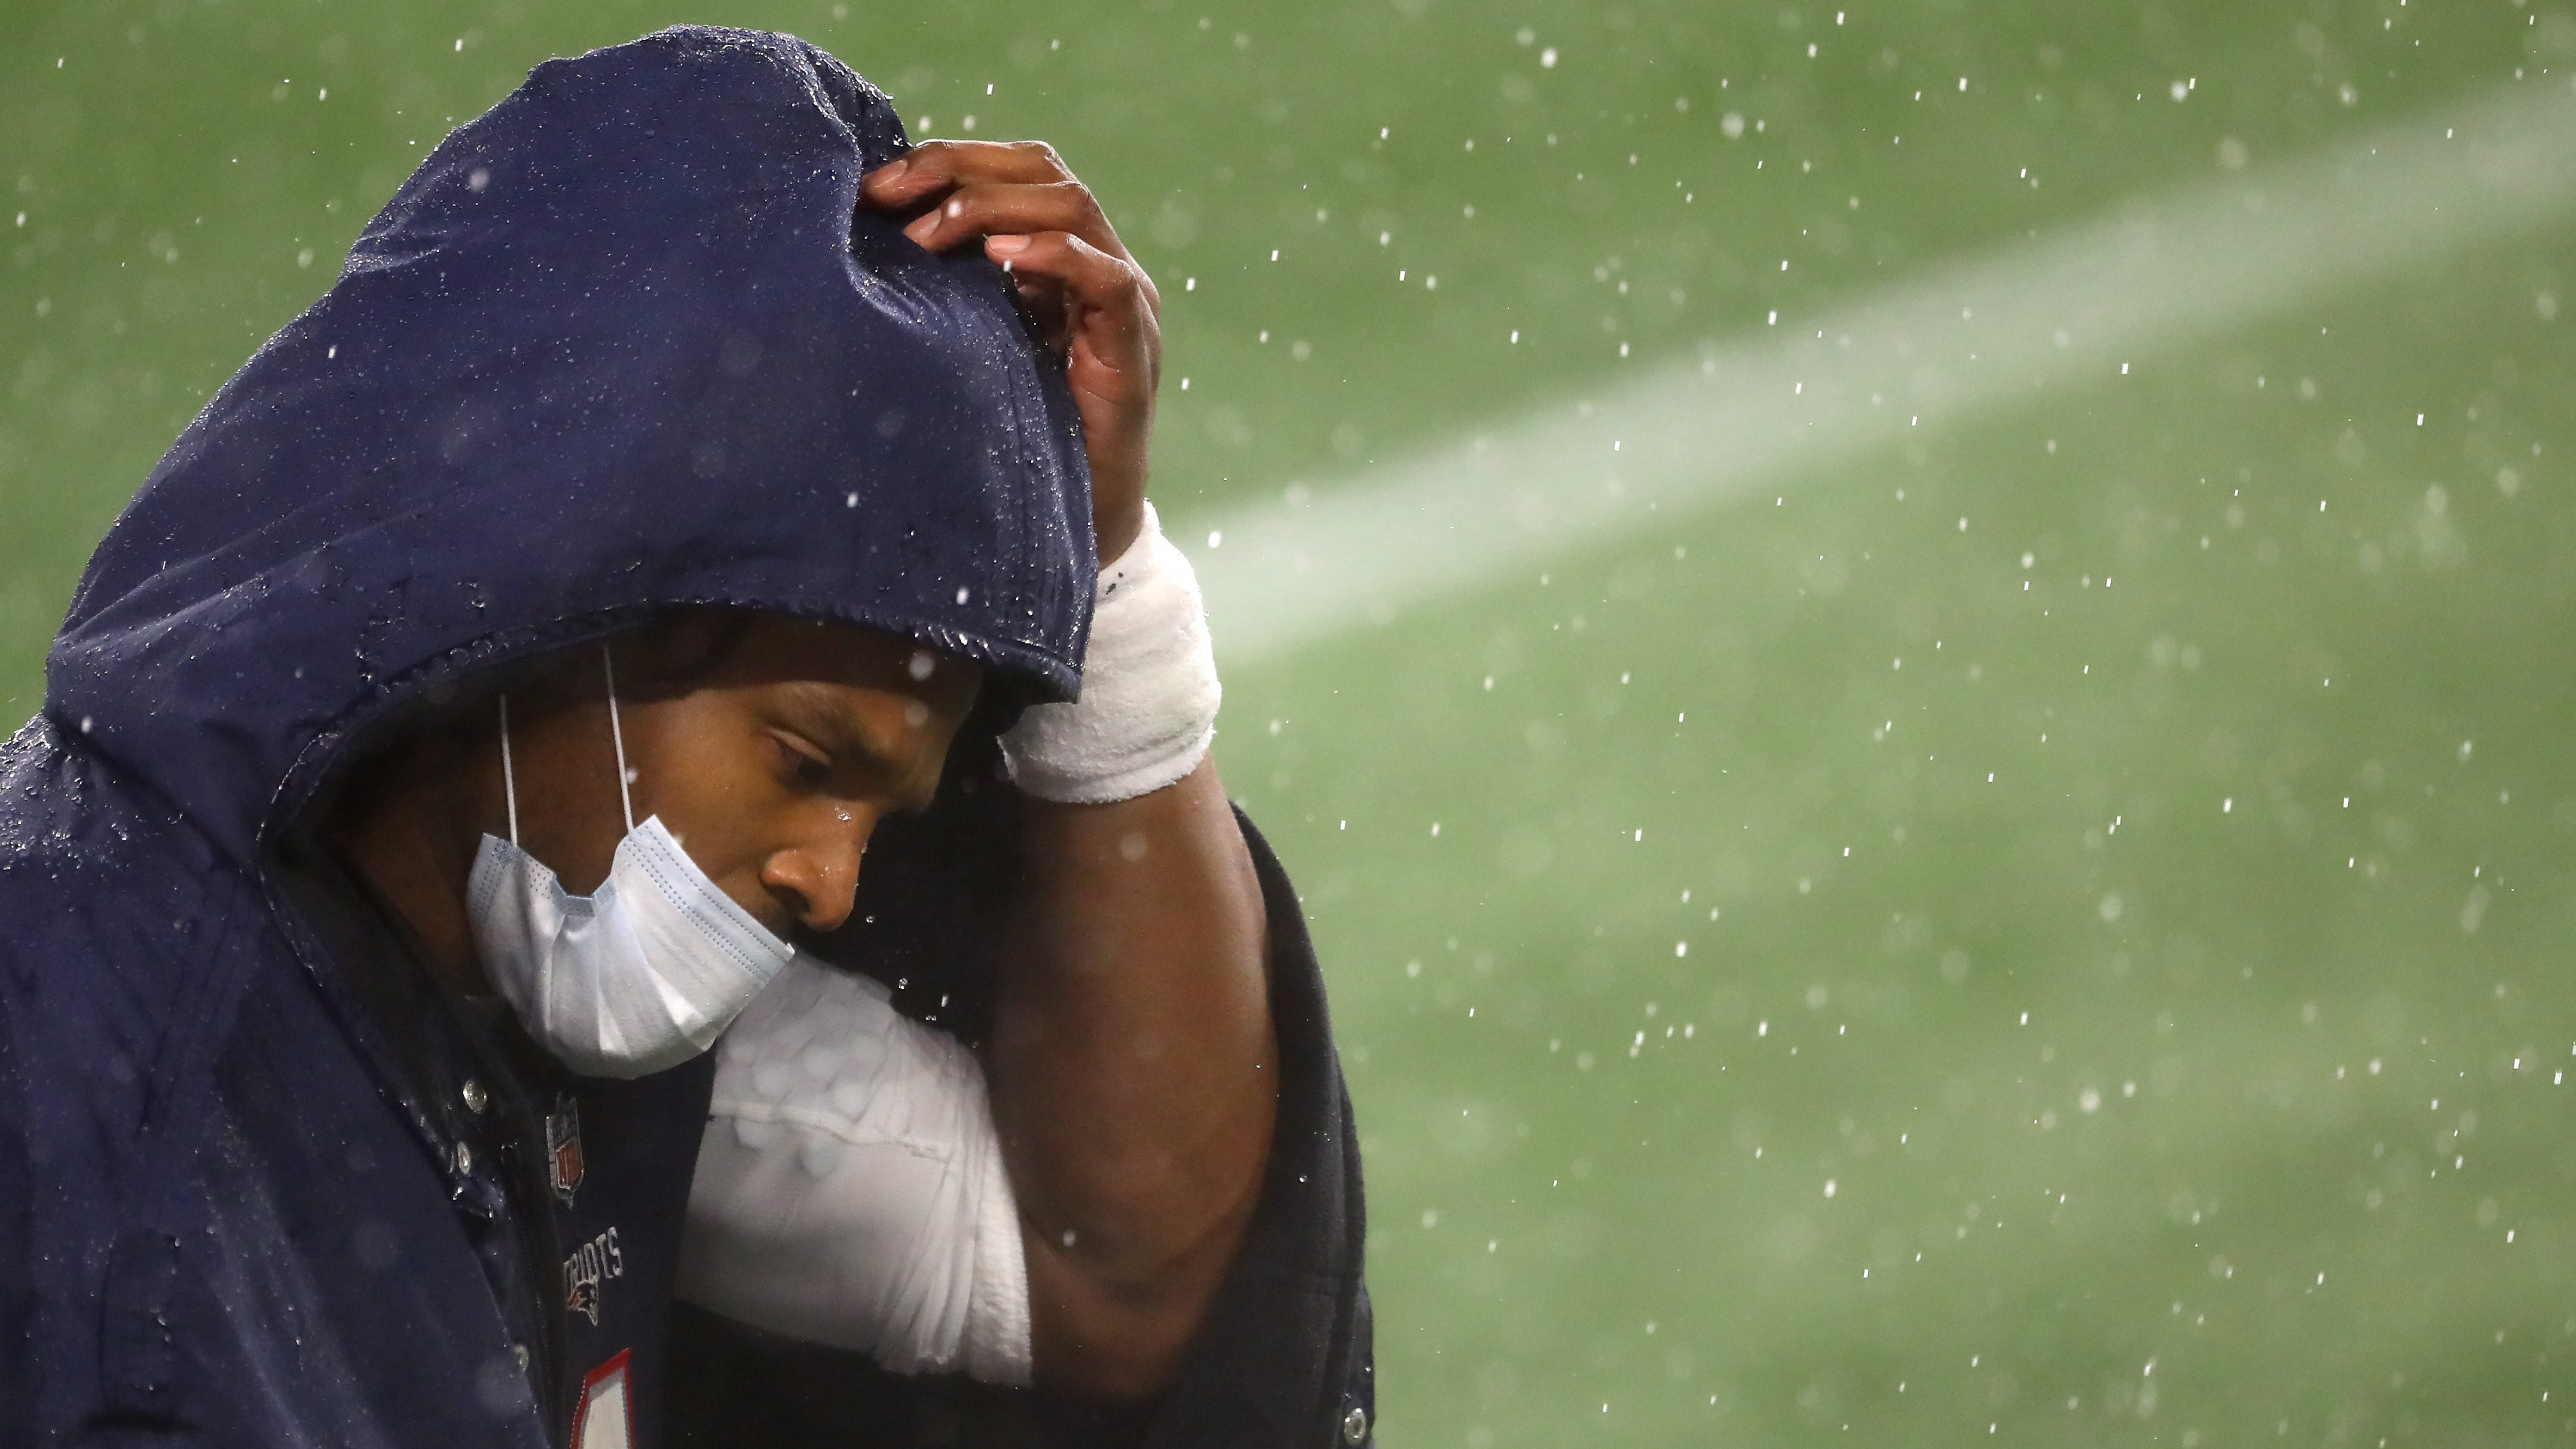 Cam Newton, quarterback, of the New England Patriots, looks on from the sideline wearing a mask and rain jacket during the game against the Baltimore Ravens at Gillette Stadium on November 15, 2020 in Foxborough, Massachusetts.